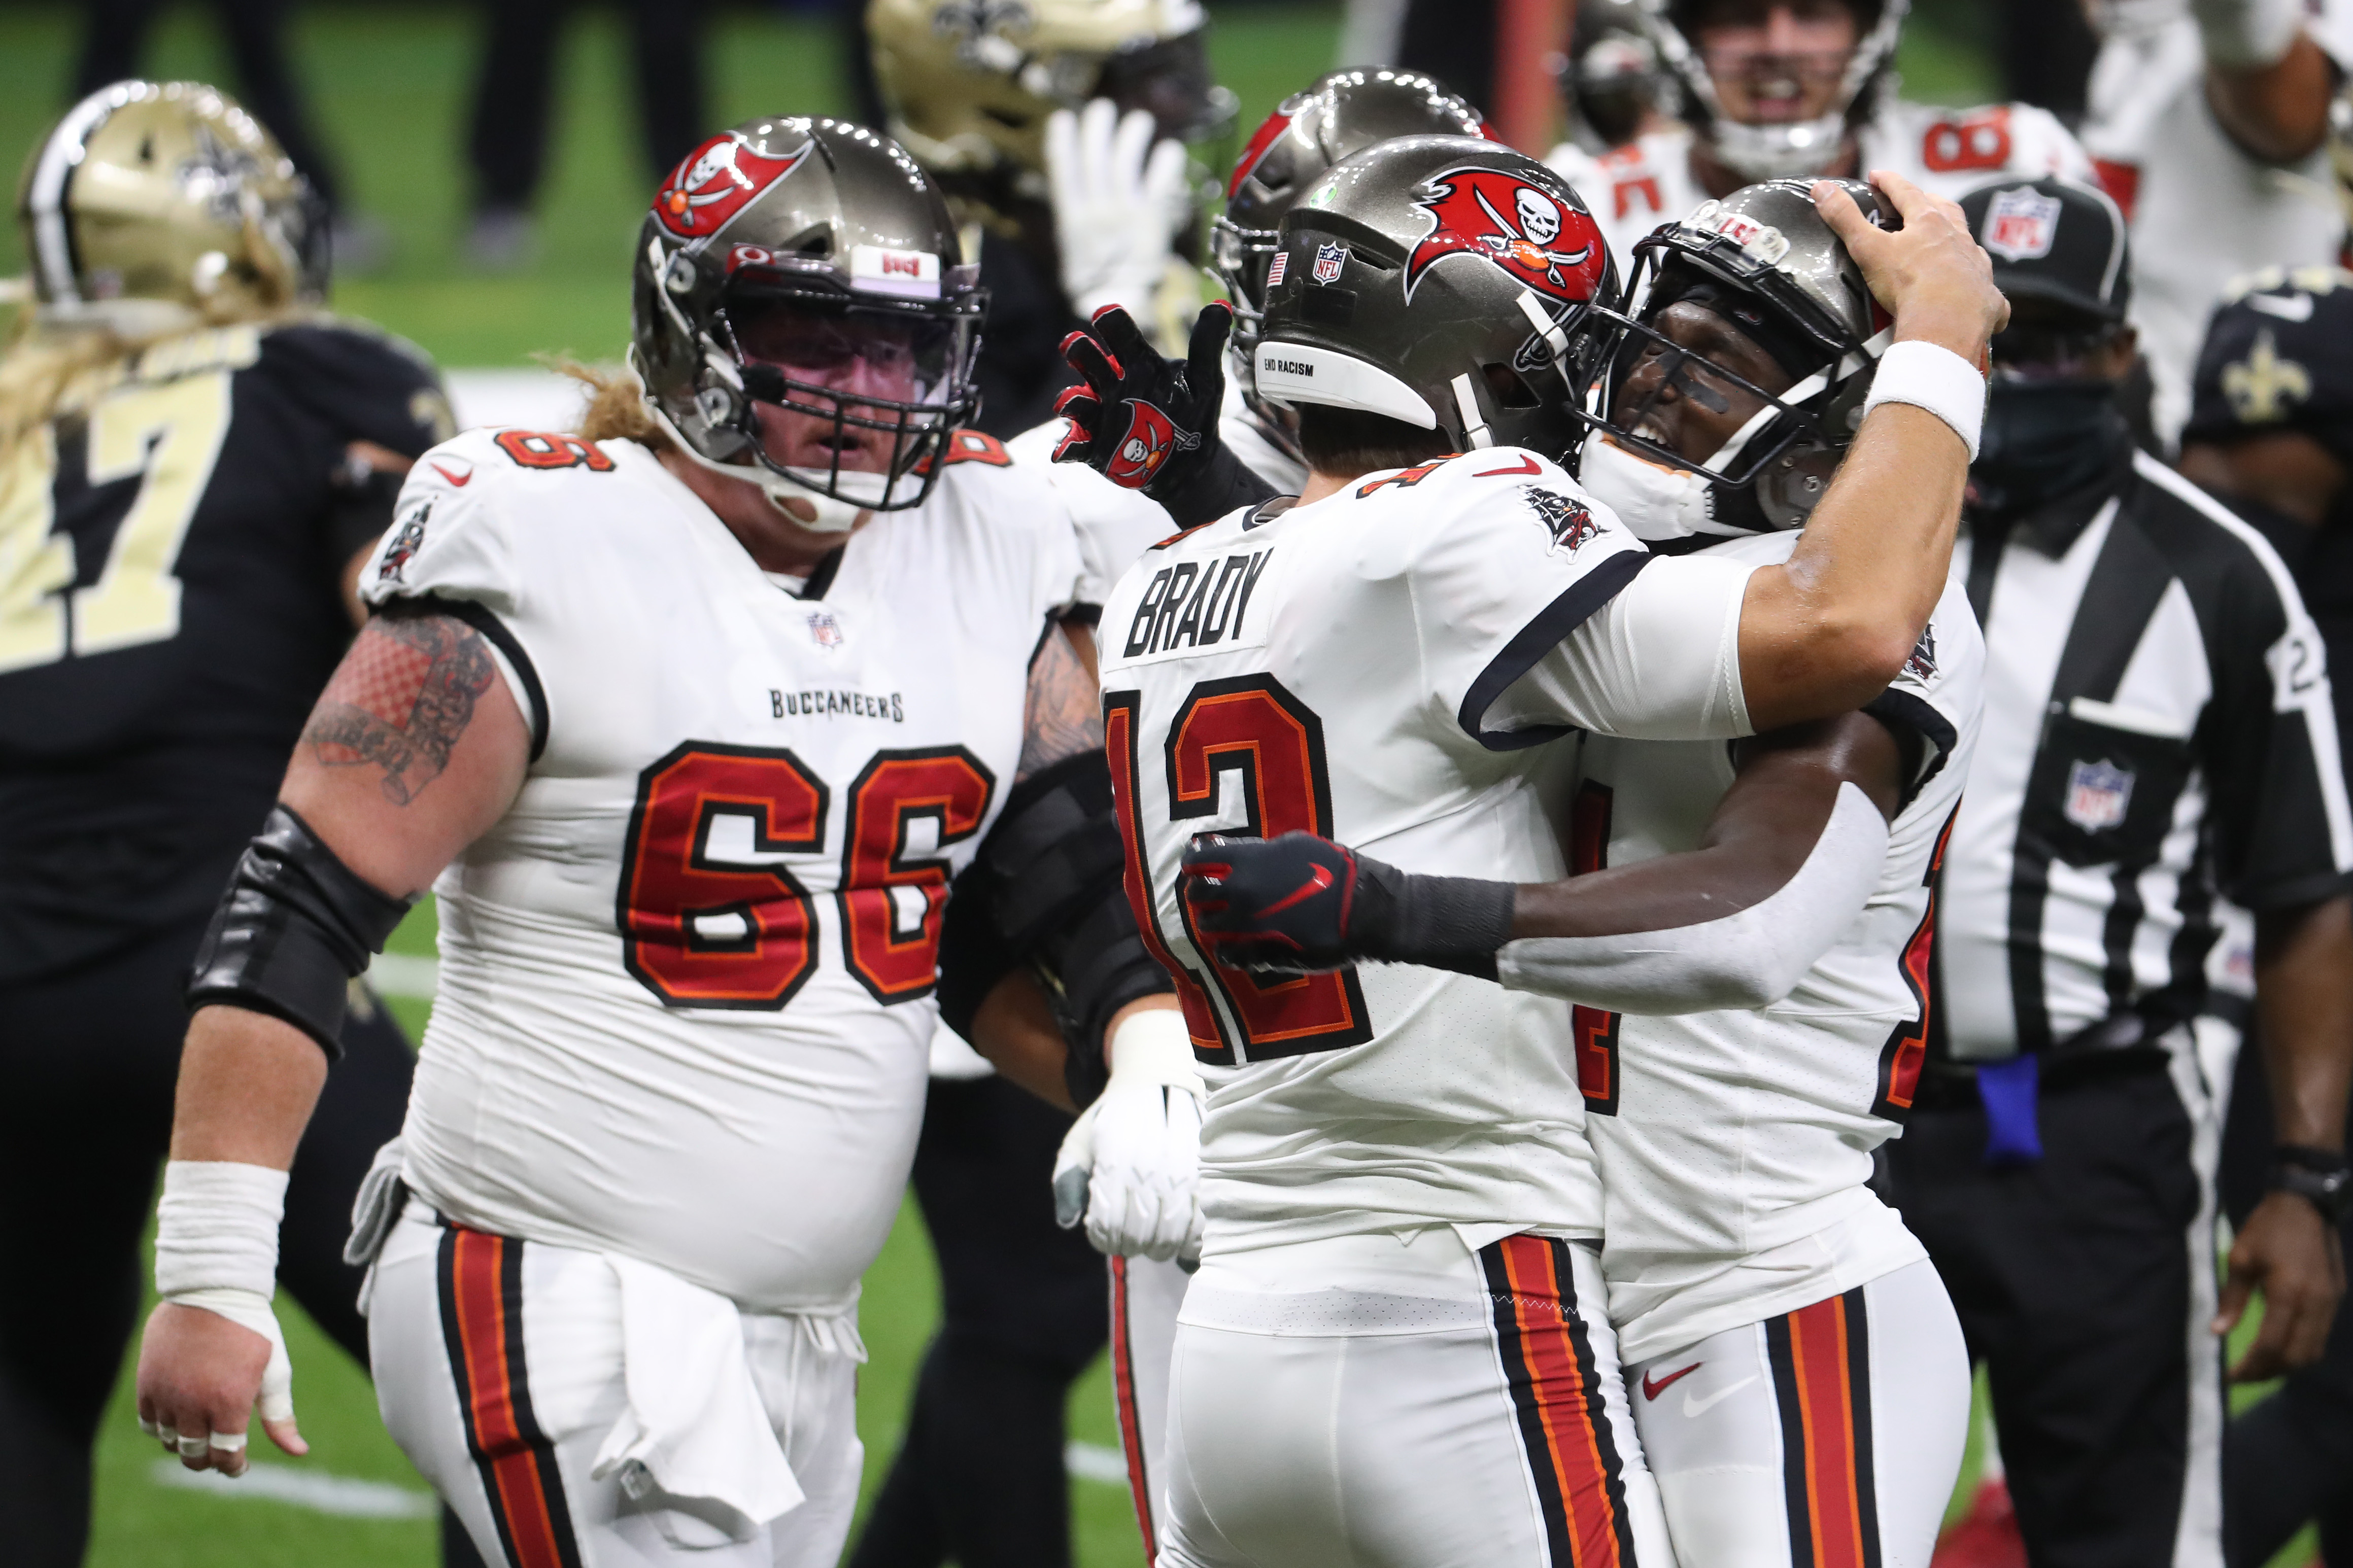 NEW ORLEANS, LOUISIANA - SEPTEMBER 13: Tom Brady #12 of the Tampa Bay Buccaneers celebrates a touchdown run with teammates against the New Orleans Saints during the first quarter at Mercedes-Benz Superdome on September 13, 2020 in New Orleans, Louisiana. (Photo by Chris Graythen/Getty Images)